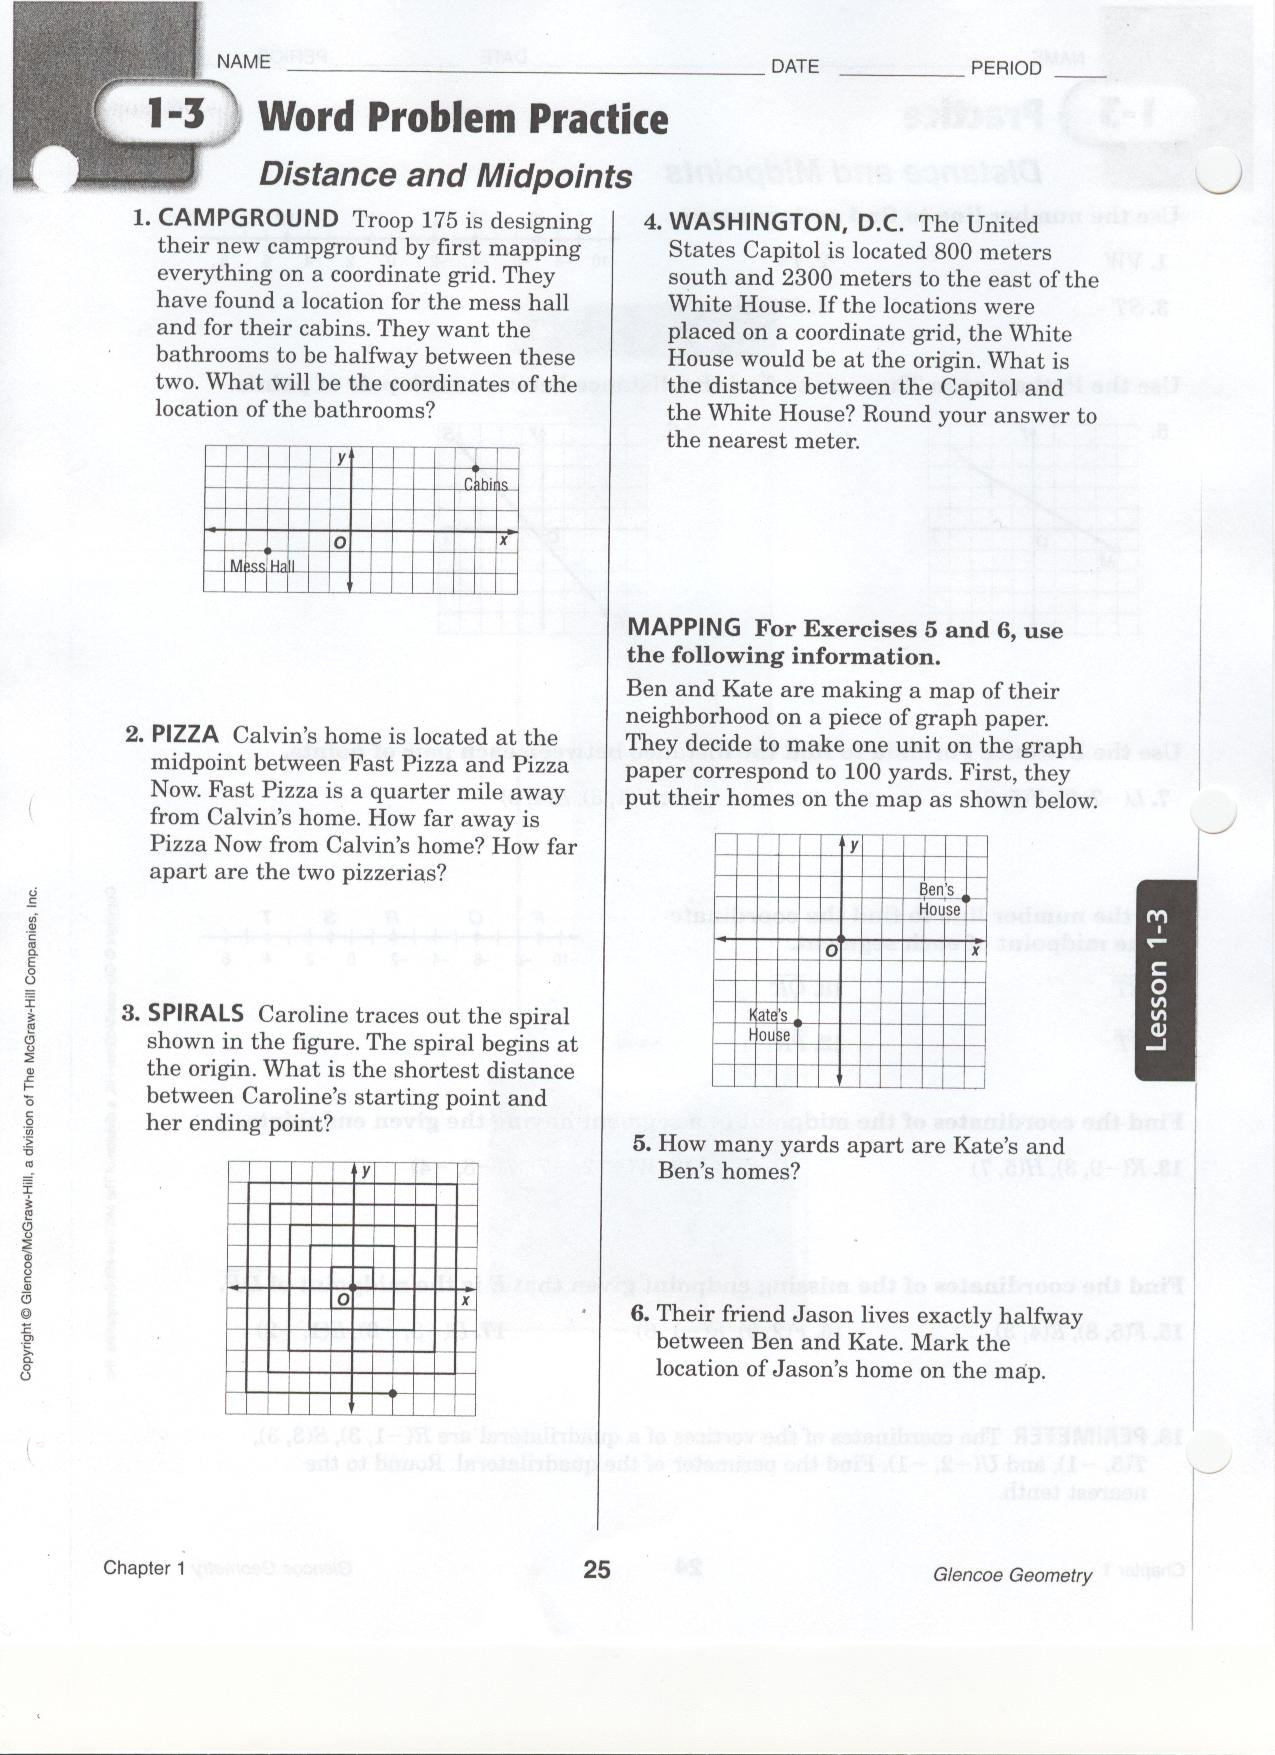 Distance and Midpoint Worksheet Answers Quia Class Page Geometry Period 4